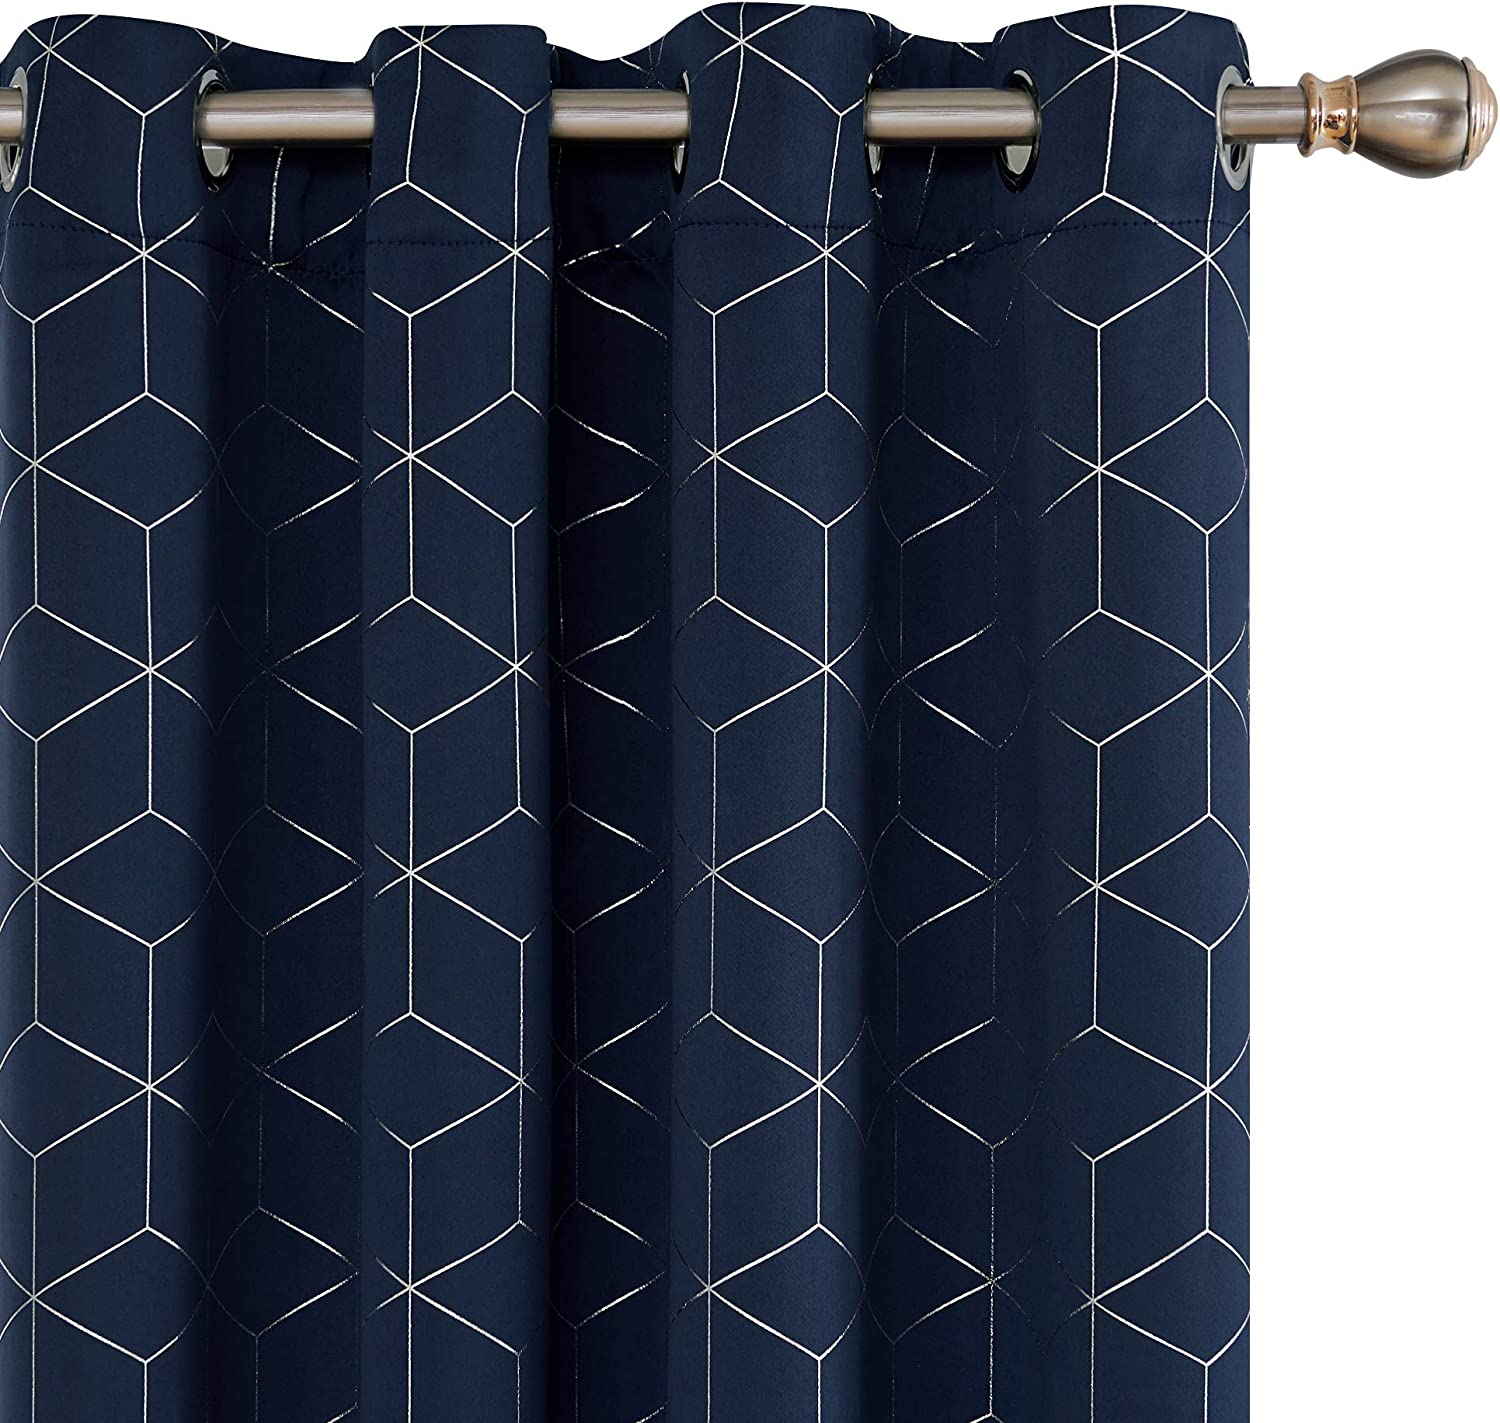 Deconovo Thermal Insulated Blackout Curtains Ring Top Curtains Diamond Foil Printed Curtains for Bedroom with Two Matching Tie Backs W66 x L54 Inch Grey One Pair